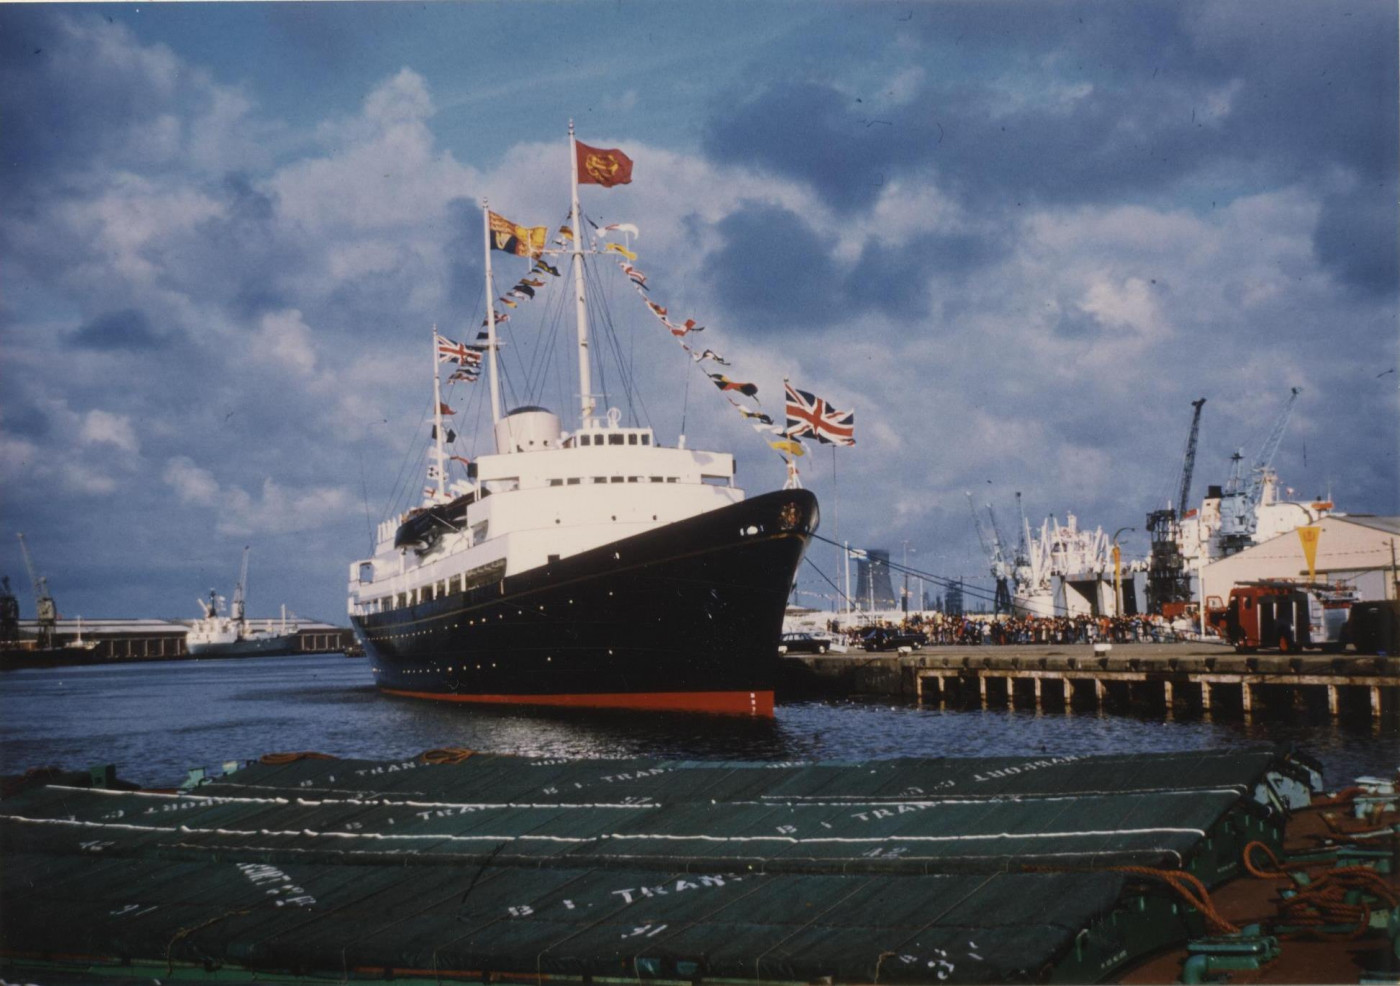 The_Royal_Yacht_Britannia_in_King_George_Dock,_Hull_13th_July_1977_(archive_ref_CCHU-4-1-9-2)_(25952